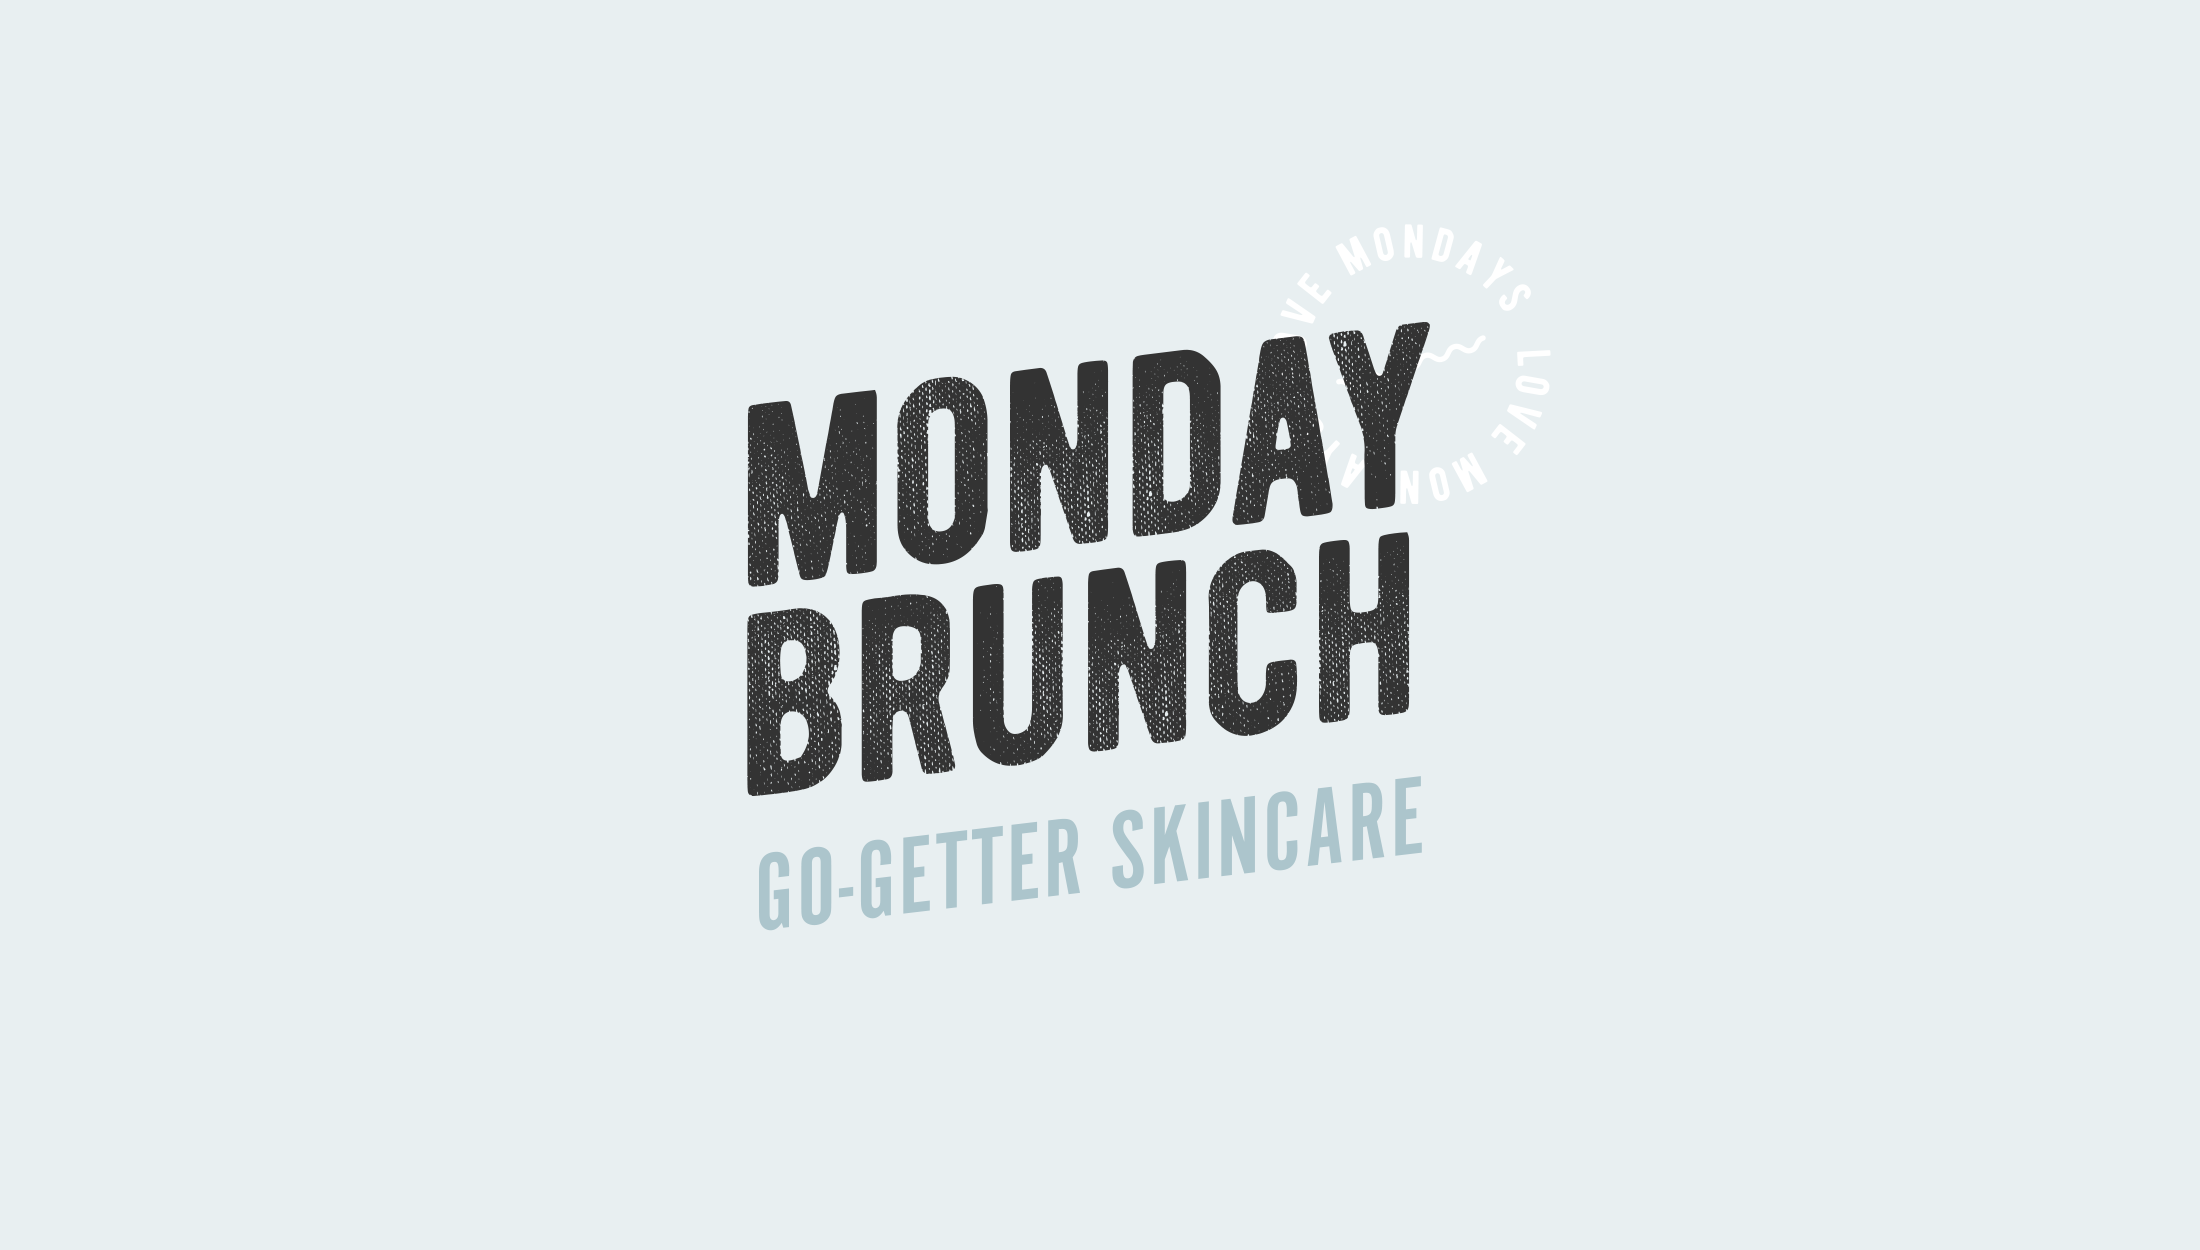 Final logo design for Monday Brunch, a skincare line that aims to bring high-quality products and positivity to it's customers, no matter what day of the week - designed by Wiltshire-based graphic designer, Kaye Huett